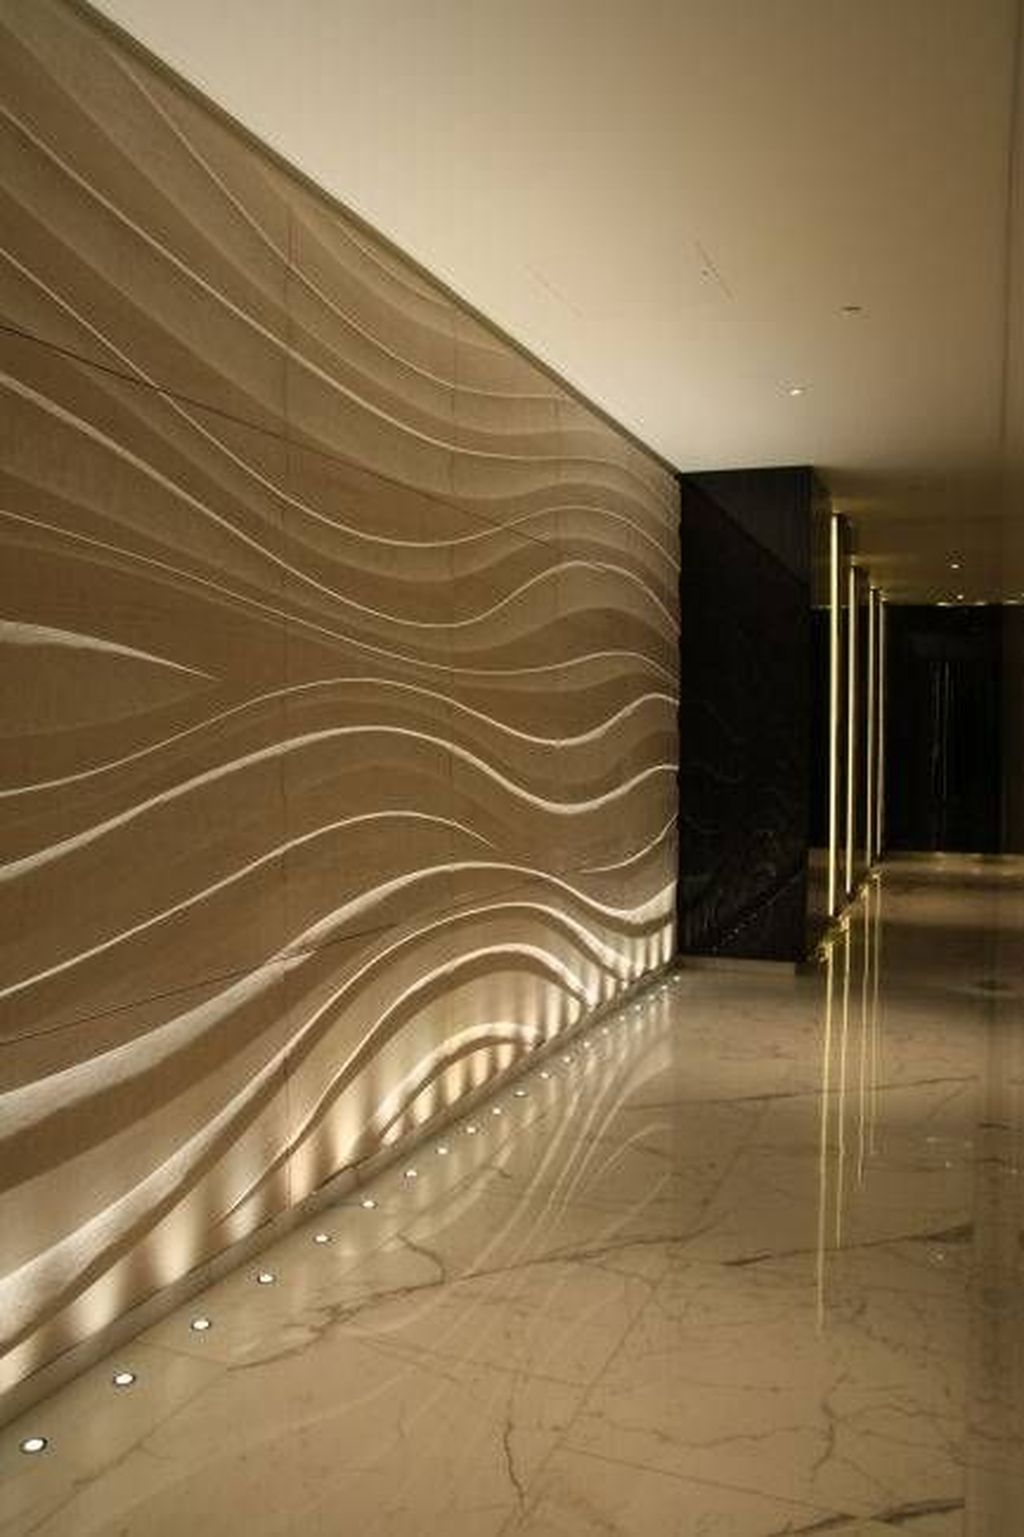 54 amazing texture and pattern ideas for interior design bathroom rh pinterest com